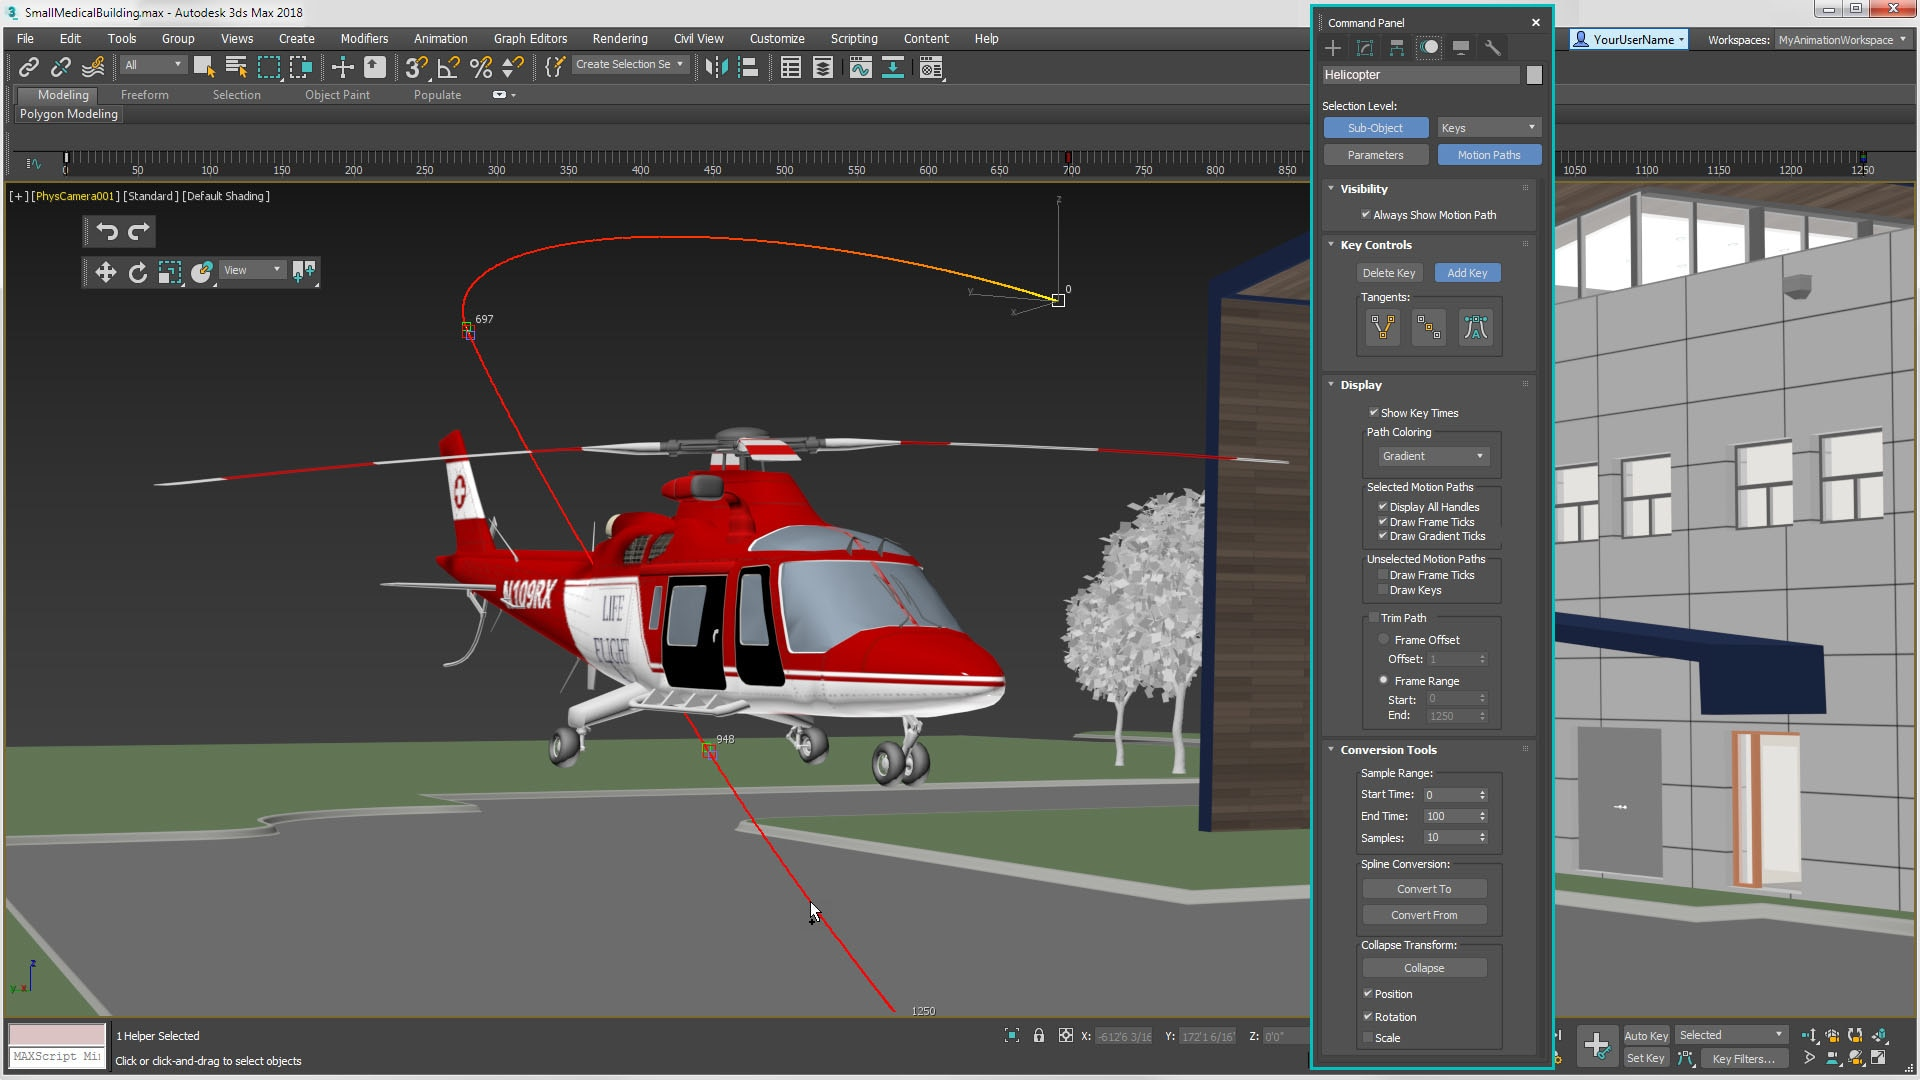 3ds Max 2019 modelling and rendering software